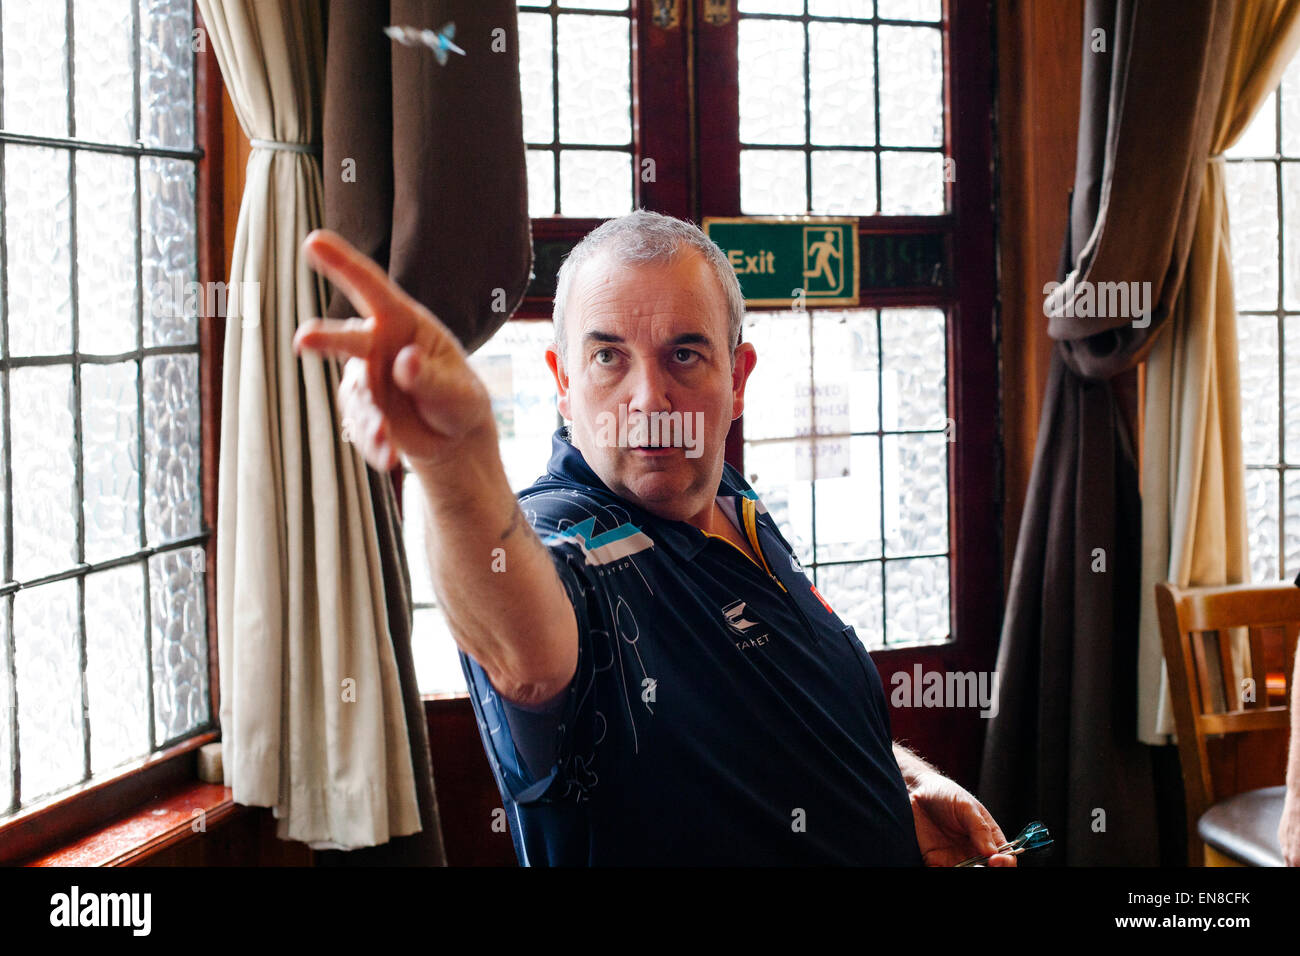 Phil 'The Power' Taylor, 16x world darts champion training in London. - Stock Image